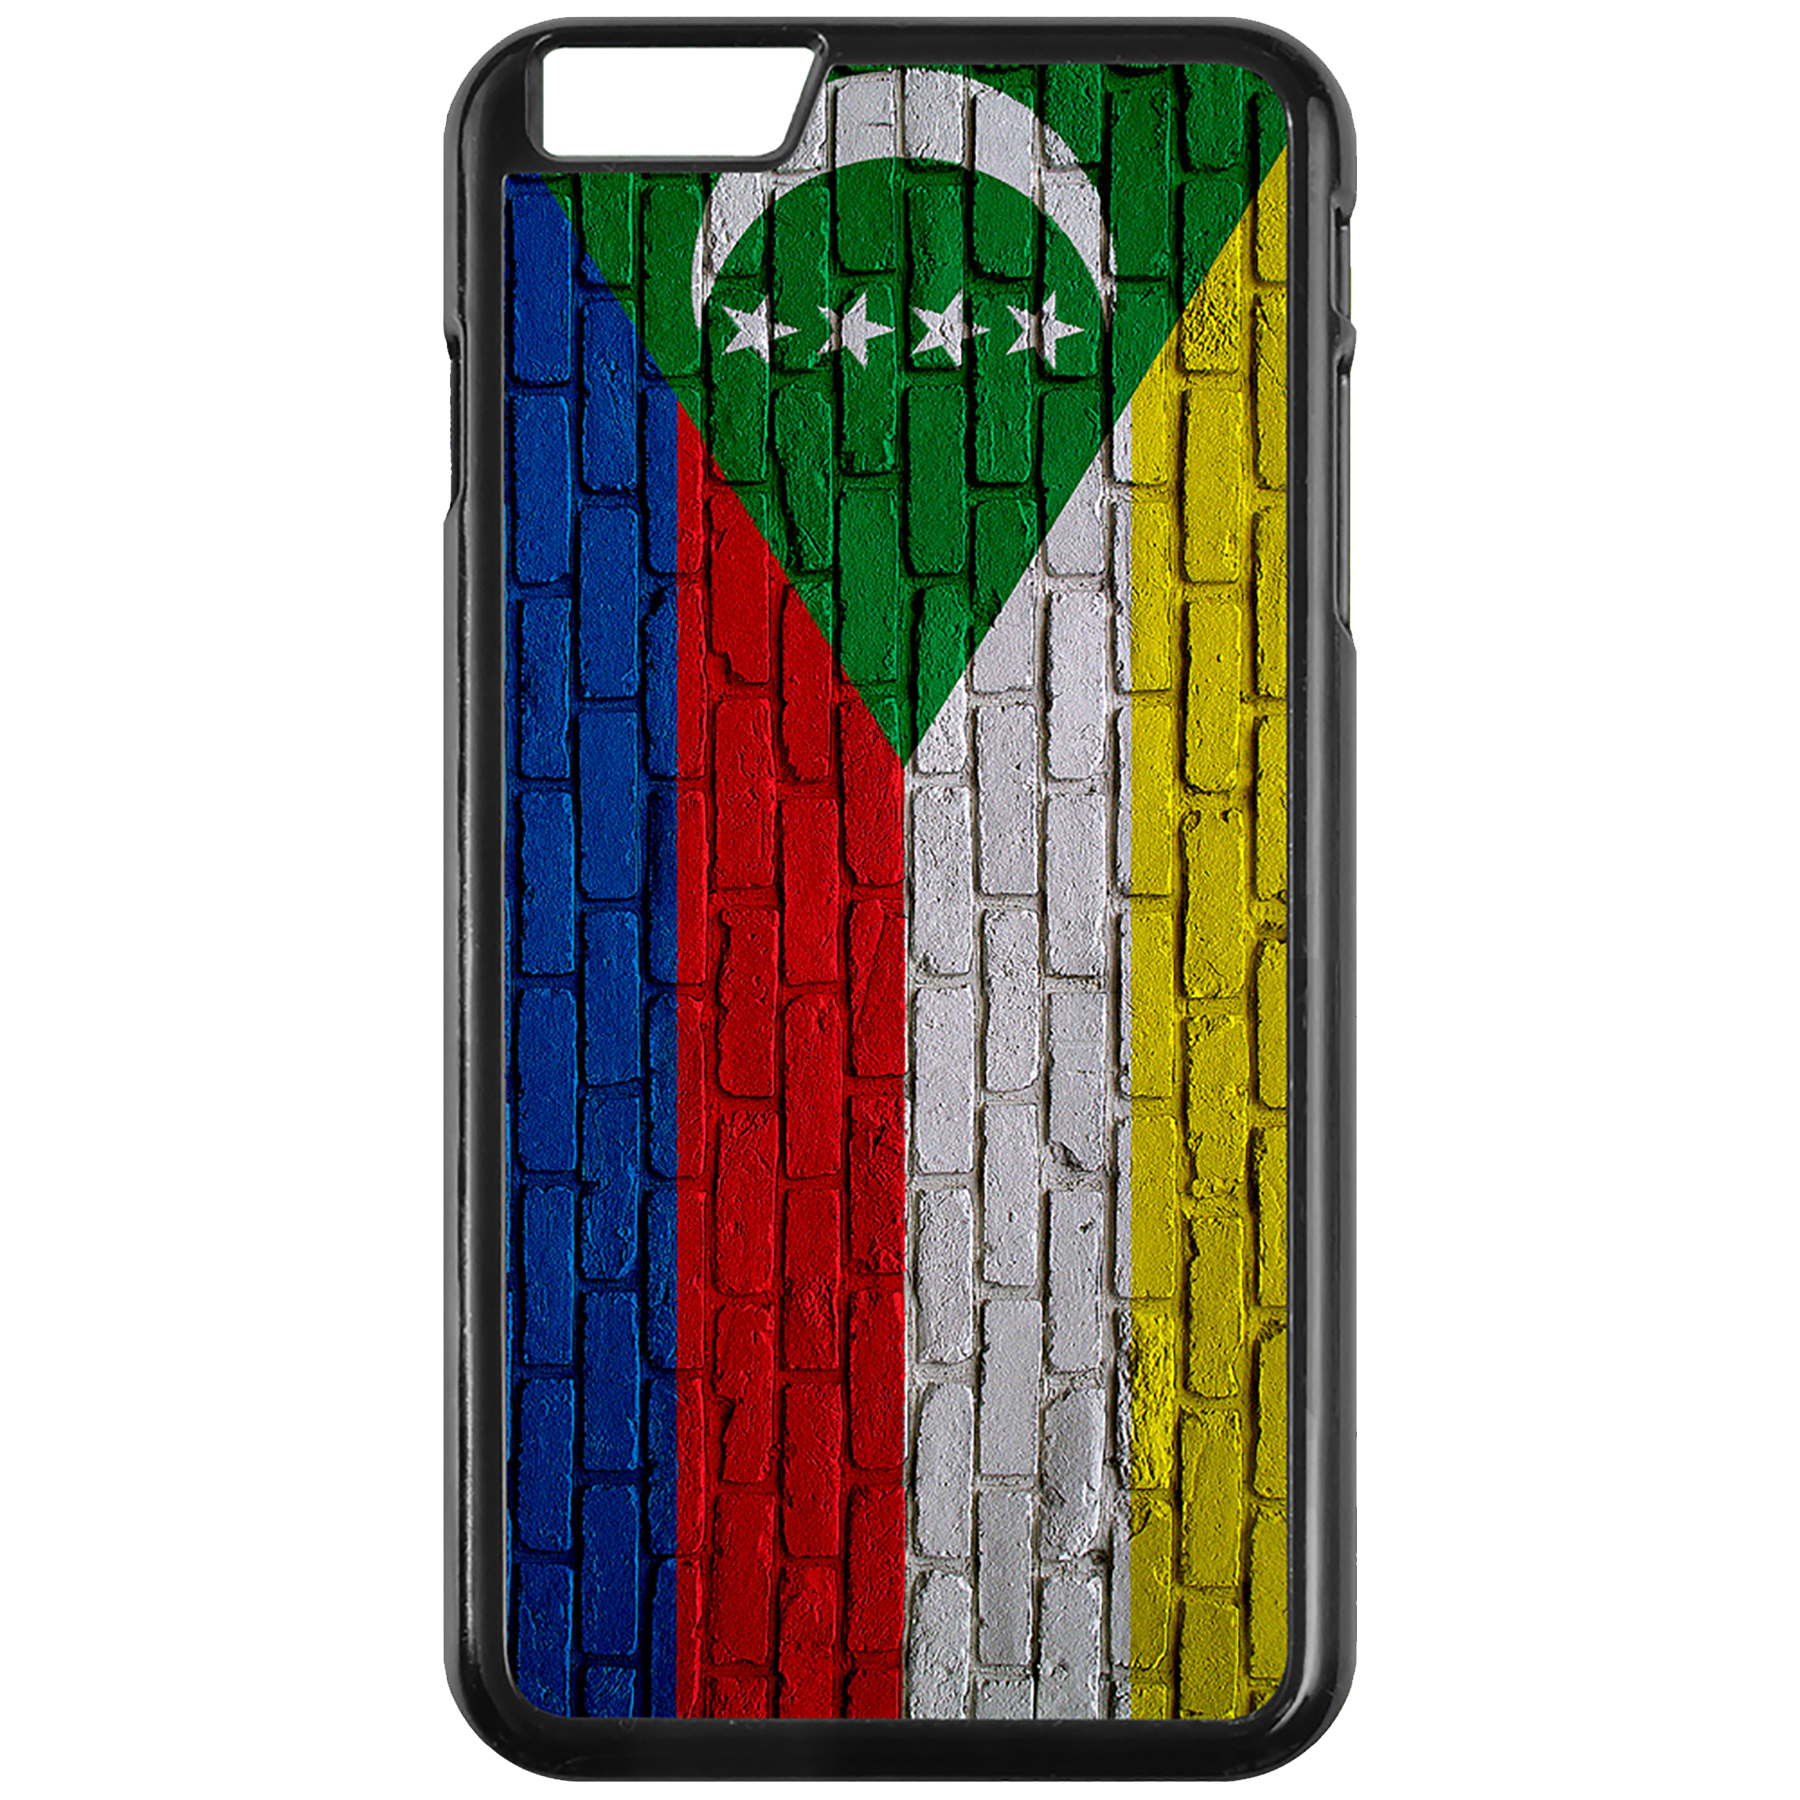 Apple-iPhone-Case-with-Flag-of-Comoros-Comorian-Many-Design-Options thumbnail 50